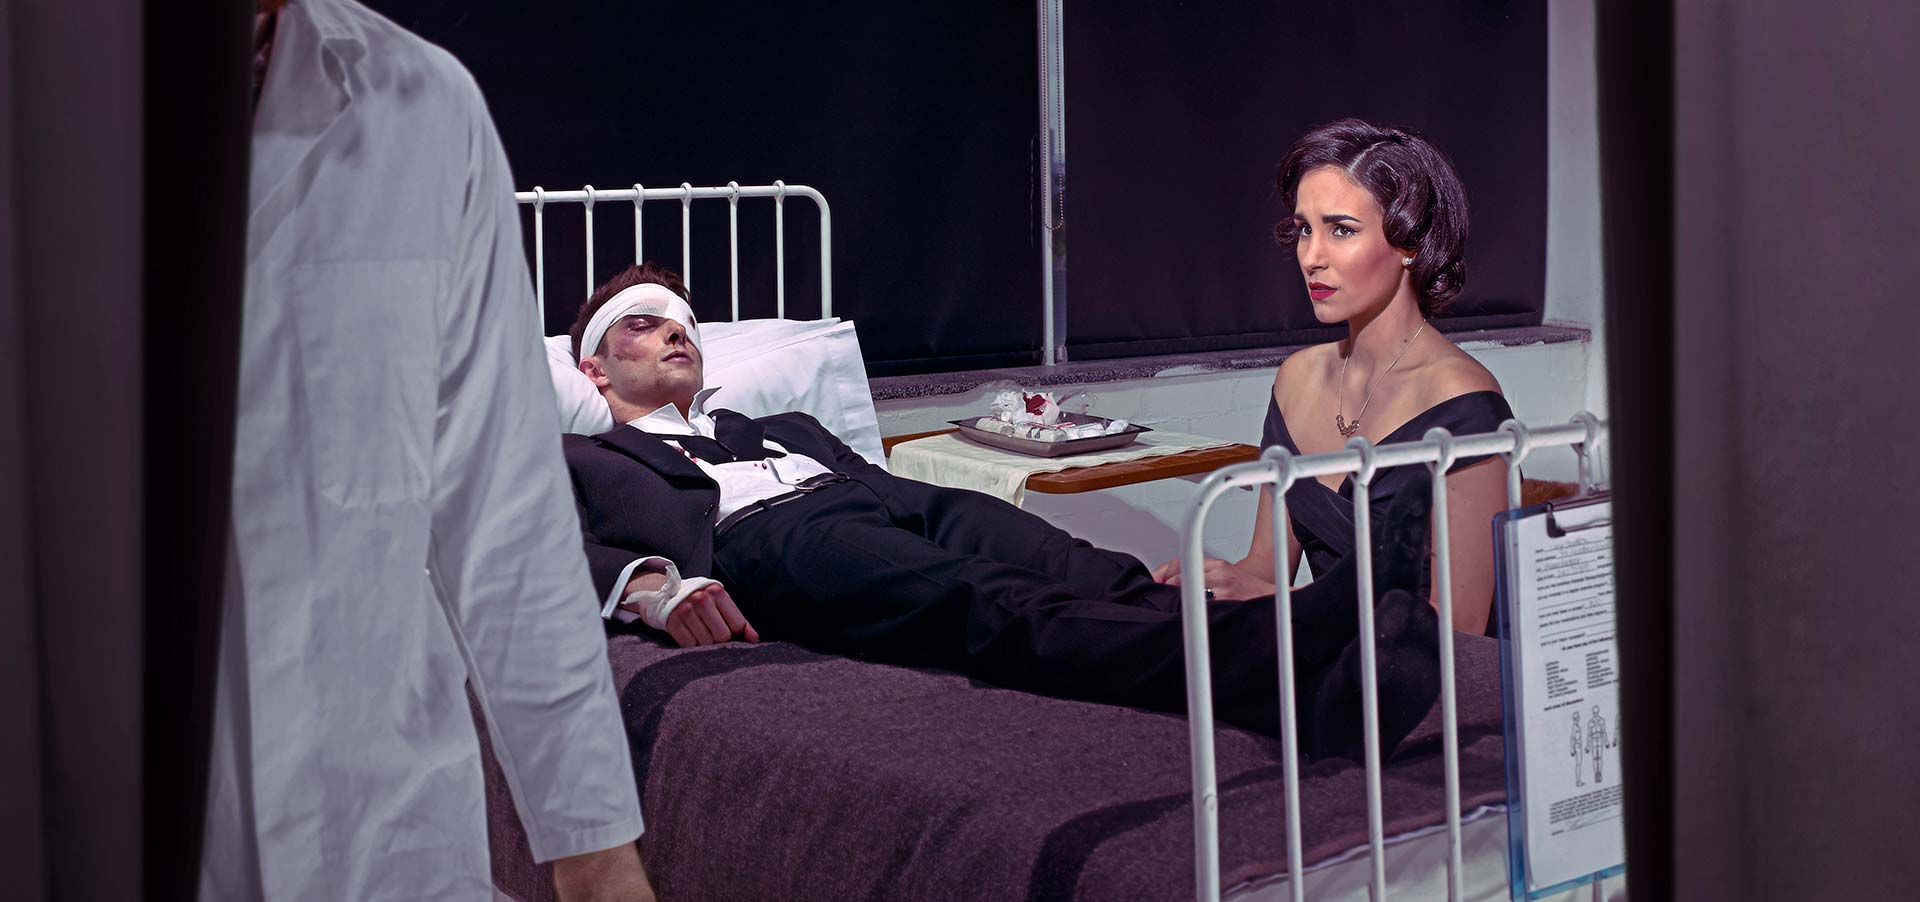 Hospital scene. Man on a bed in a tuxedo with bandage on head. Worried partner looks on.